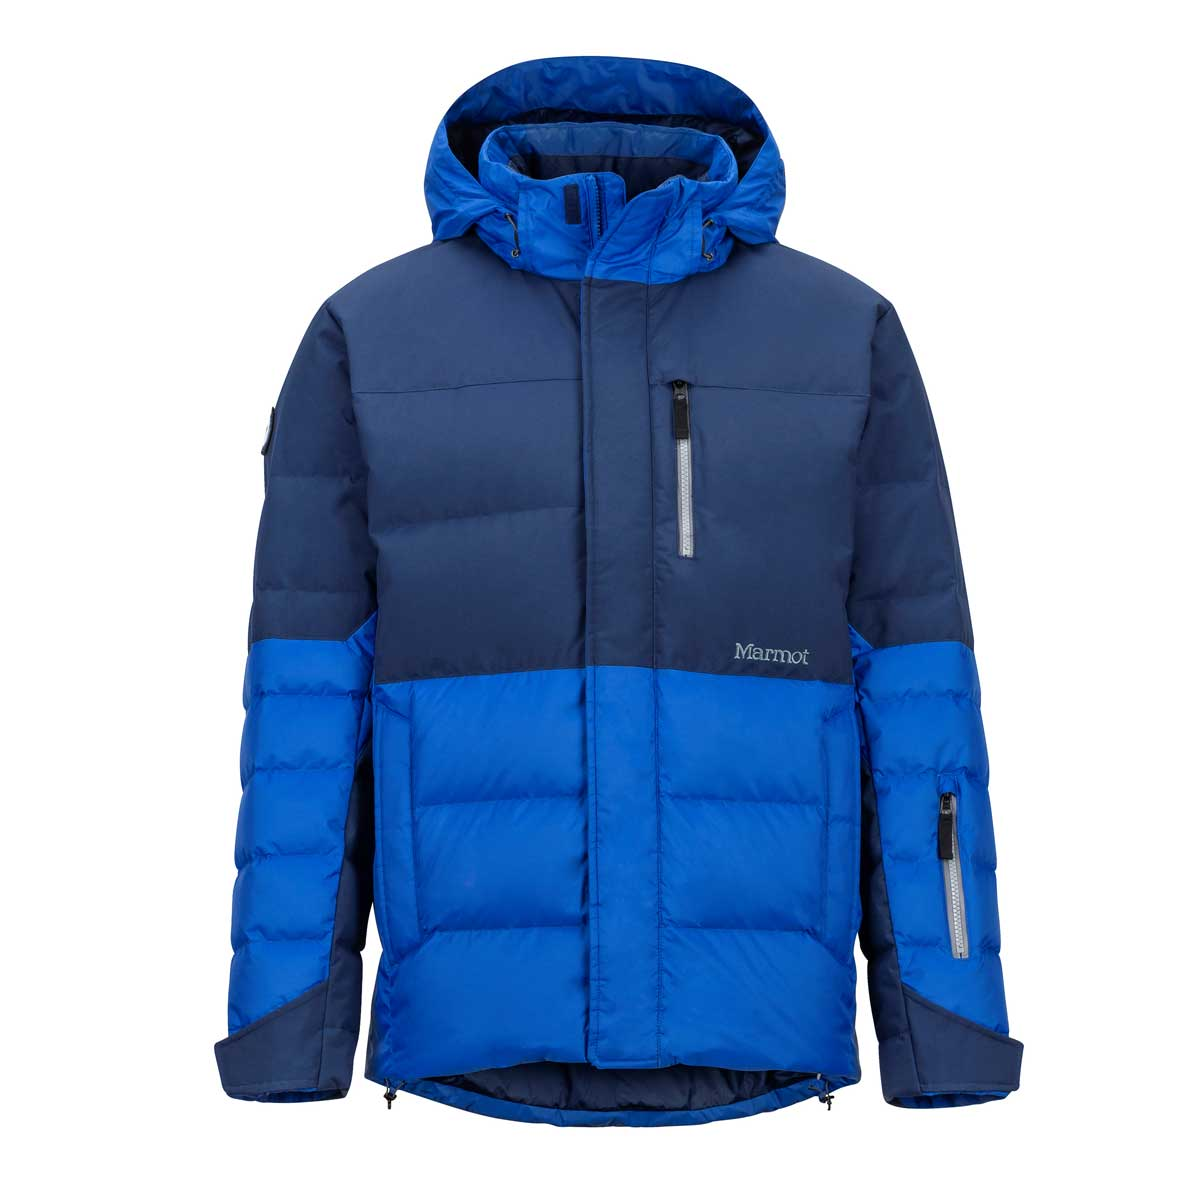 Marmot Men's Shadow Jacket in Surf and Arctic Navy